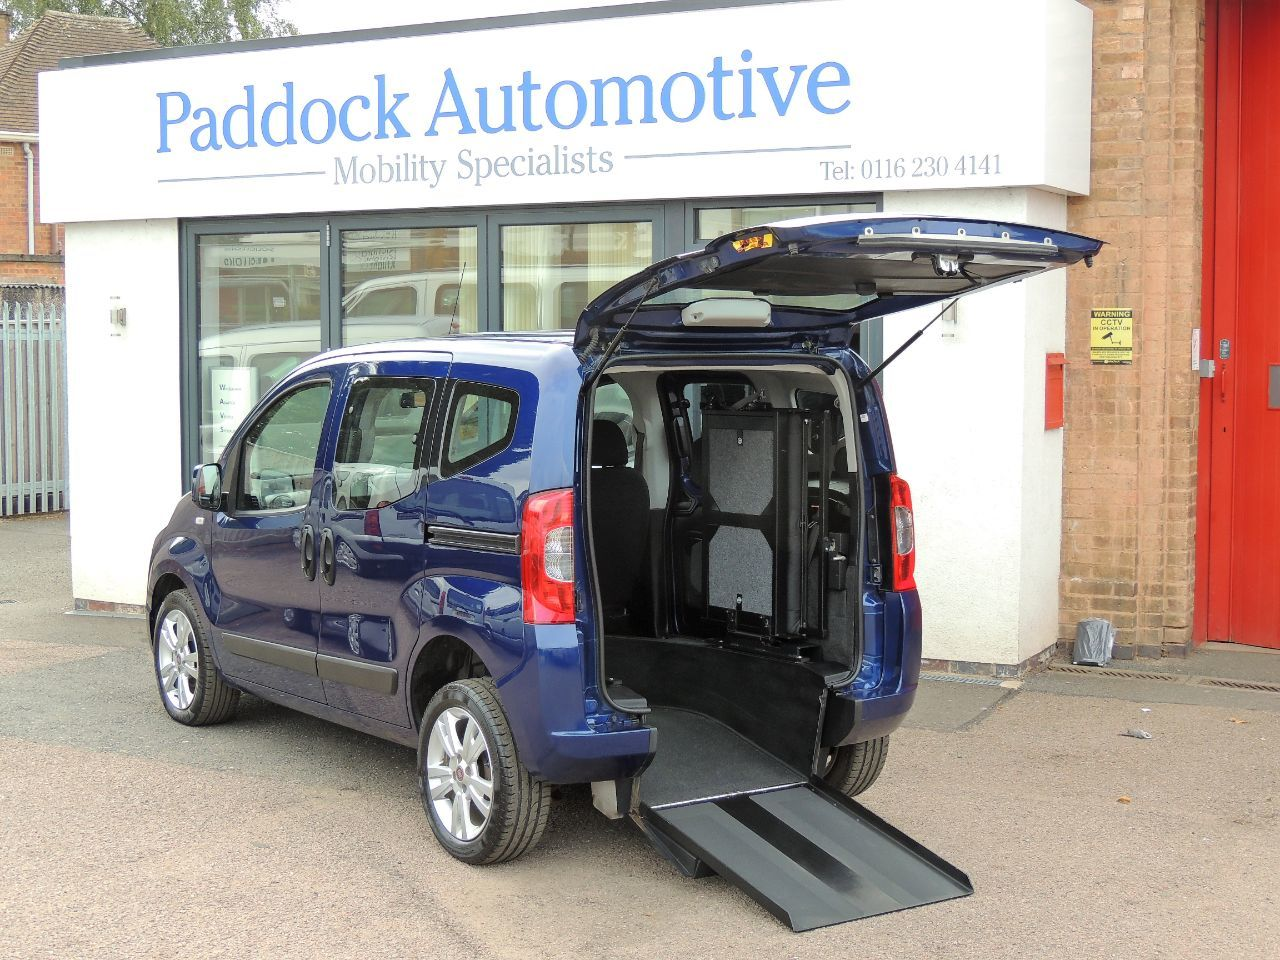 Fiat Qubo 1.3 Multijet MyLife Dualogic Automatic Disabled Wheelchair Adapted Vehicle WAV Wheelchair Adapted Diesel Blue Mica